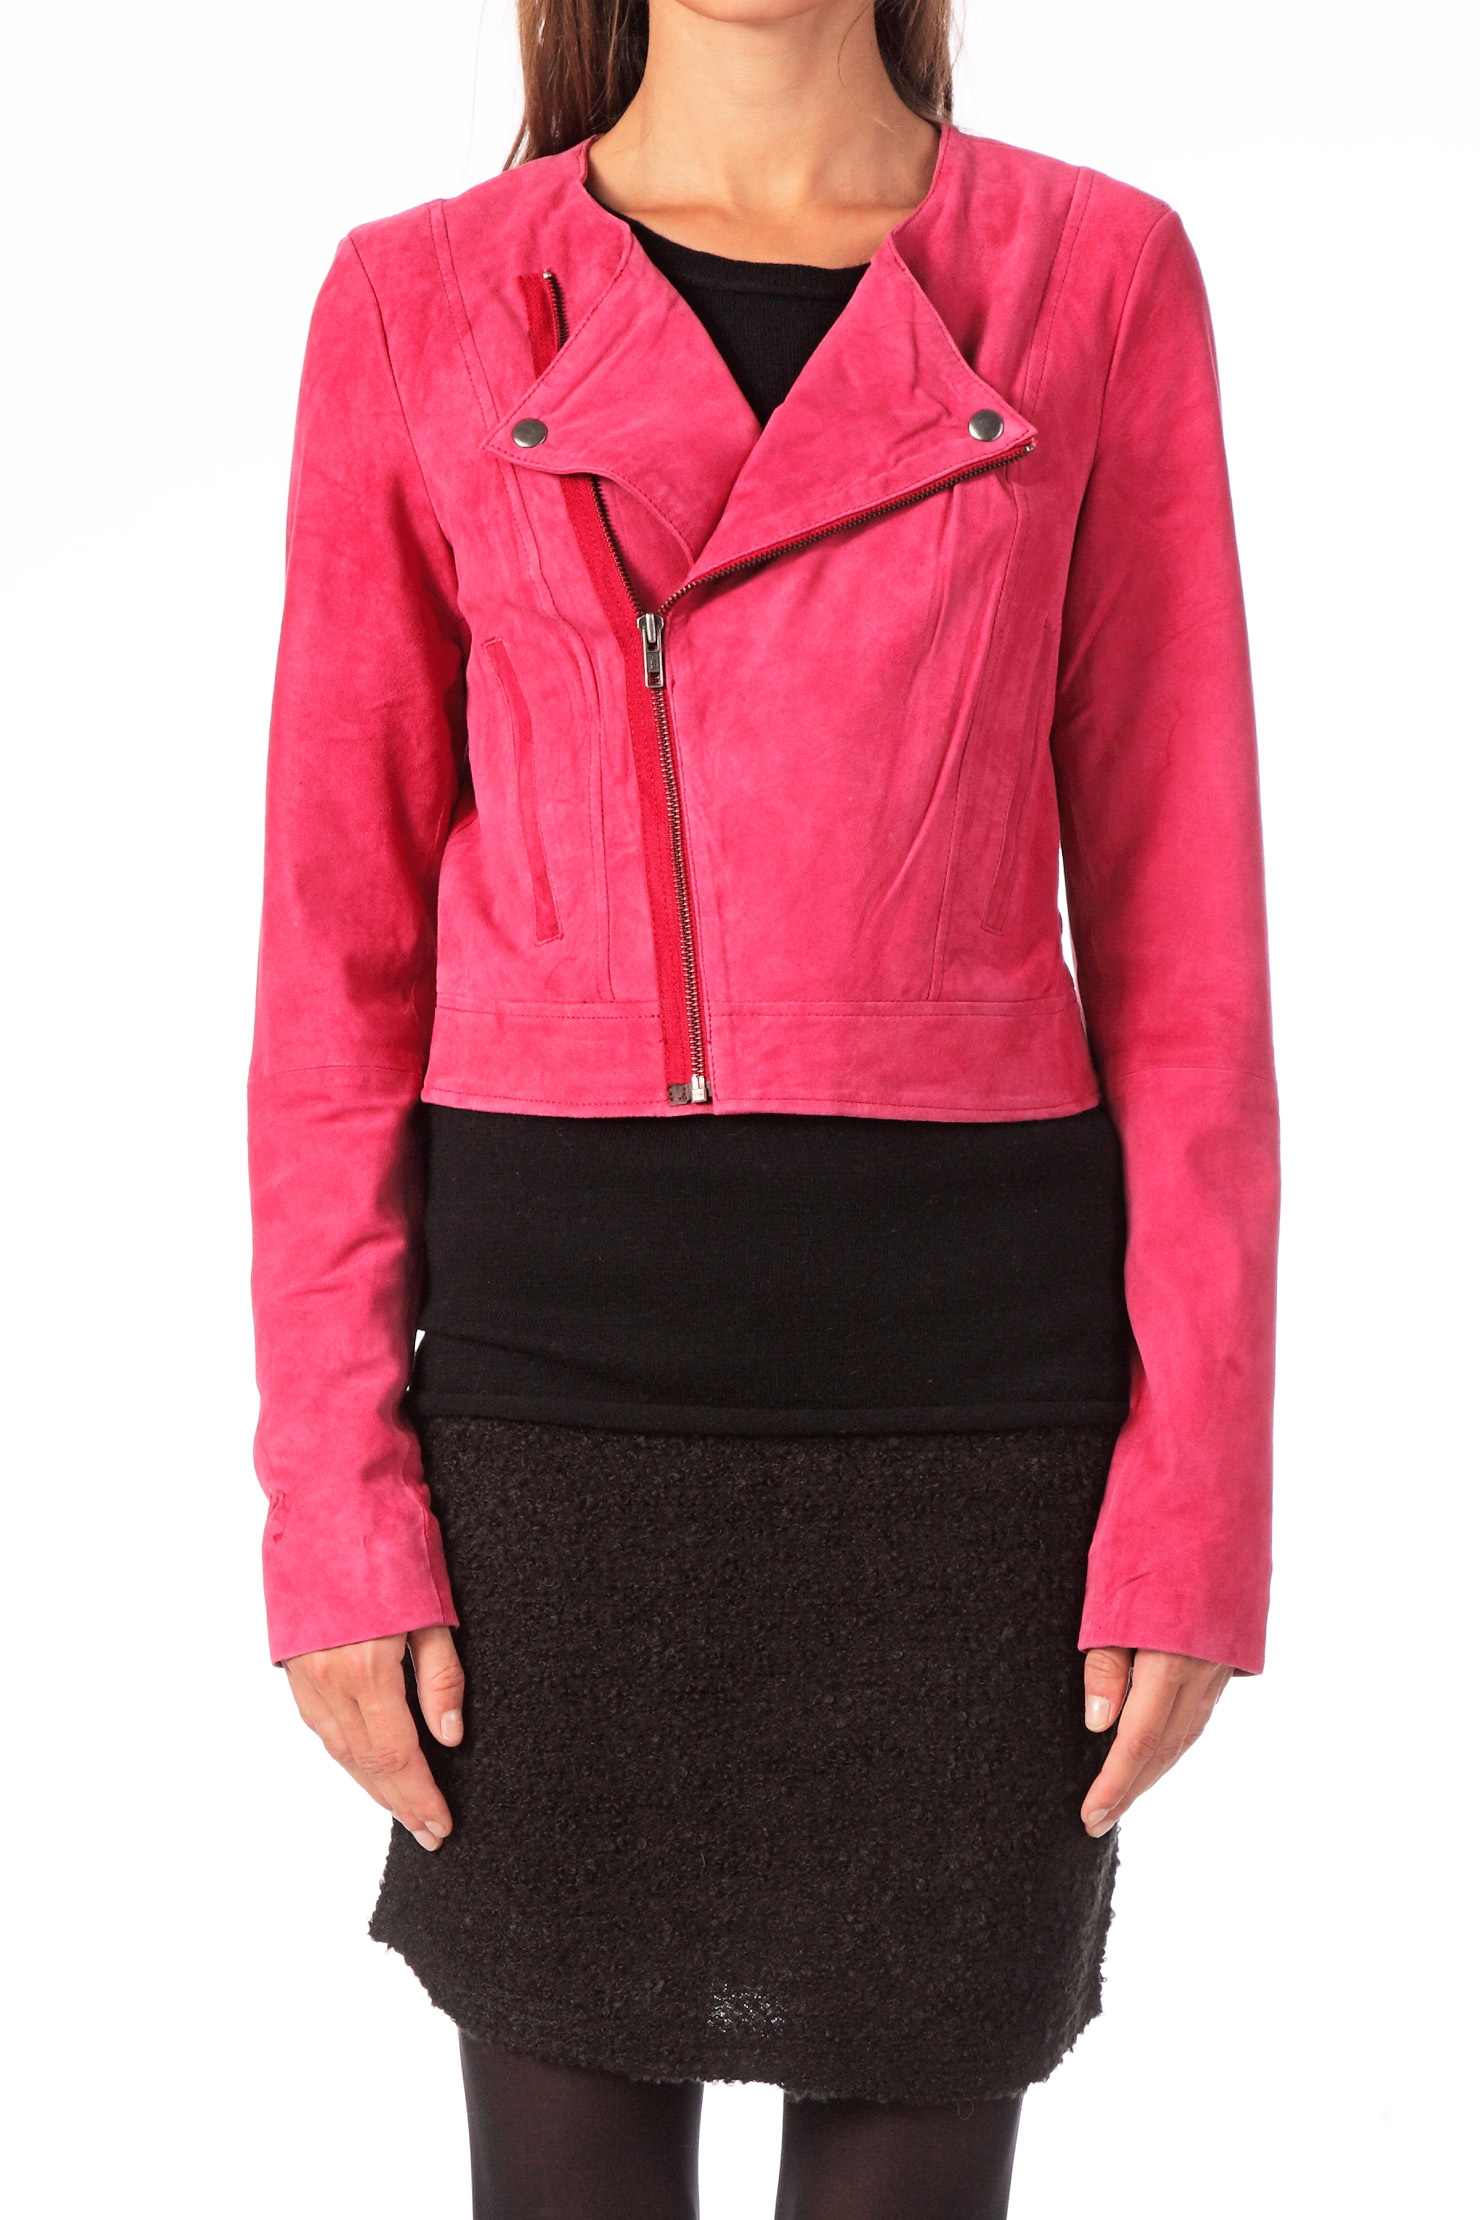 vero moda very leather niky suede jacket exp in pink lyst. Black Bedroom Furniture Sets. Home Design Ideas